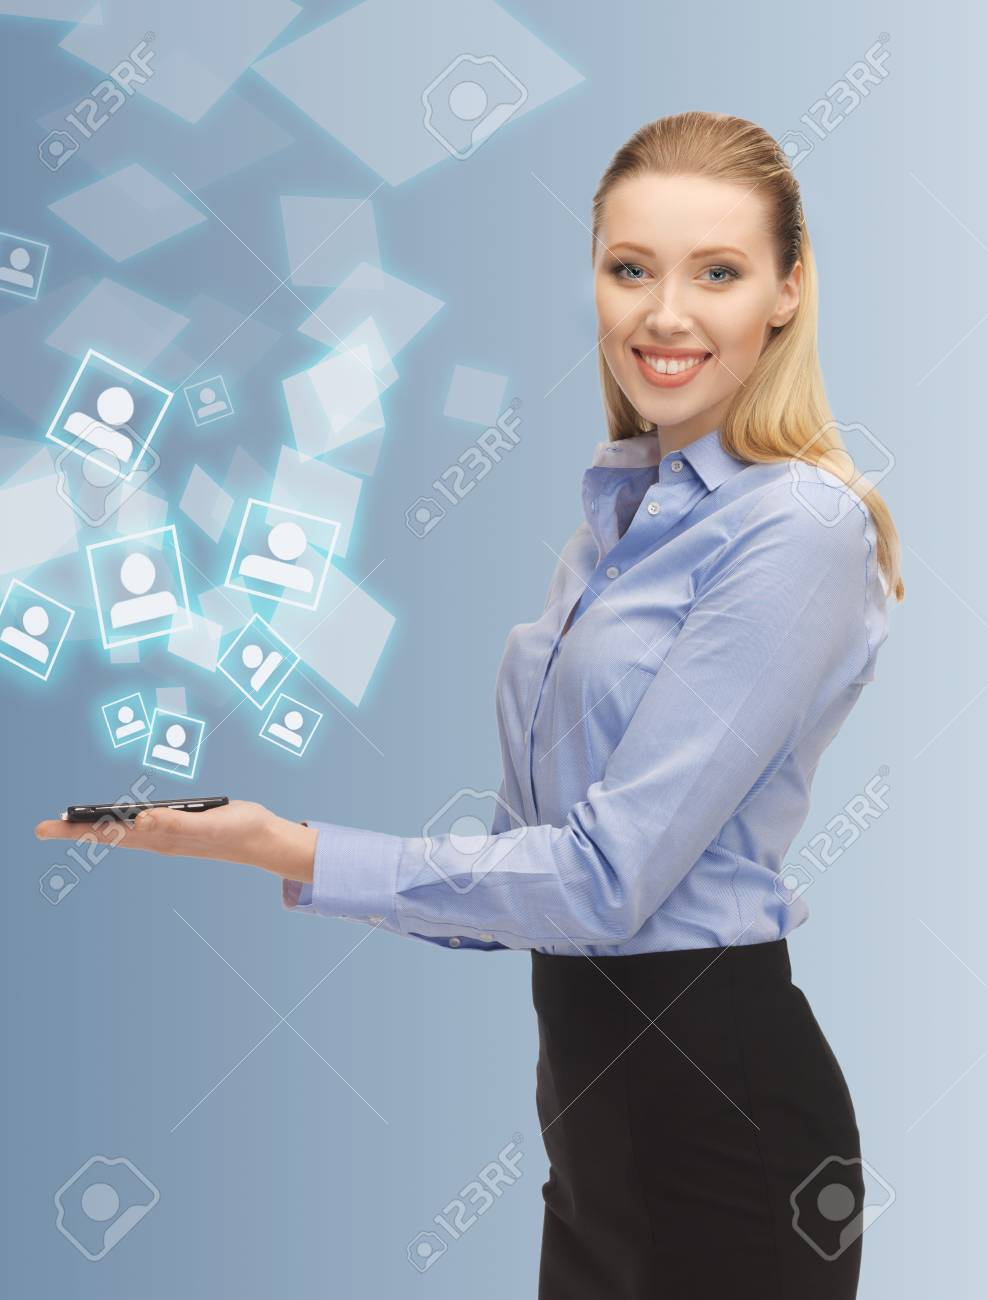 bright picture of woman with smartphone Stock Photo - 17540197